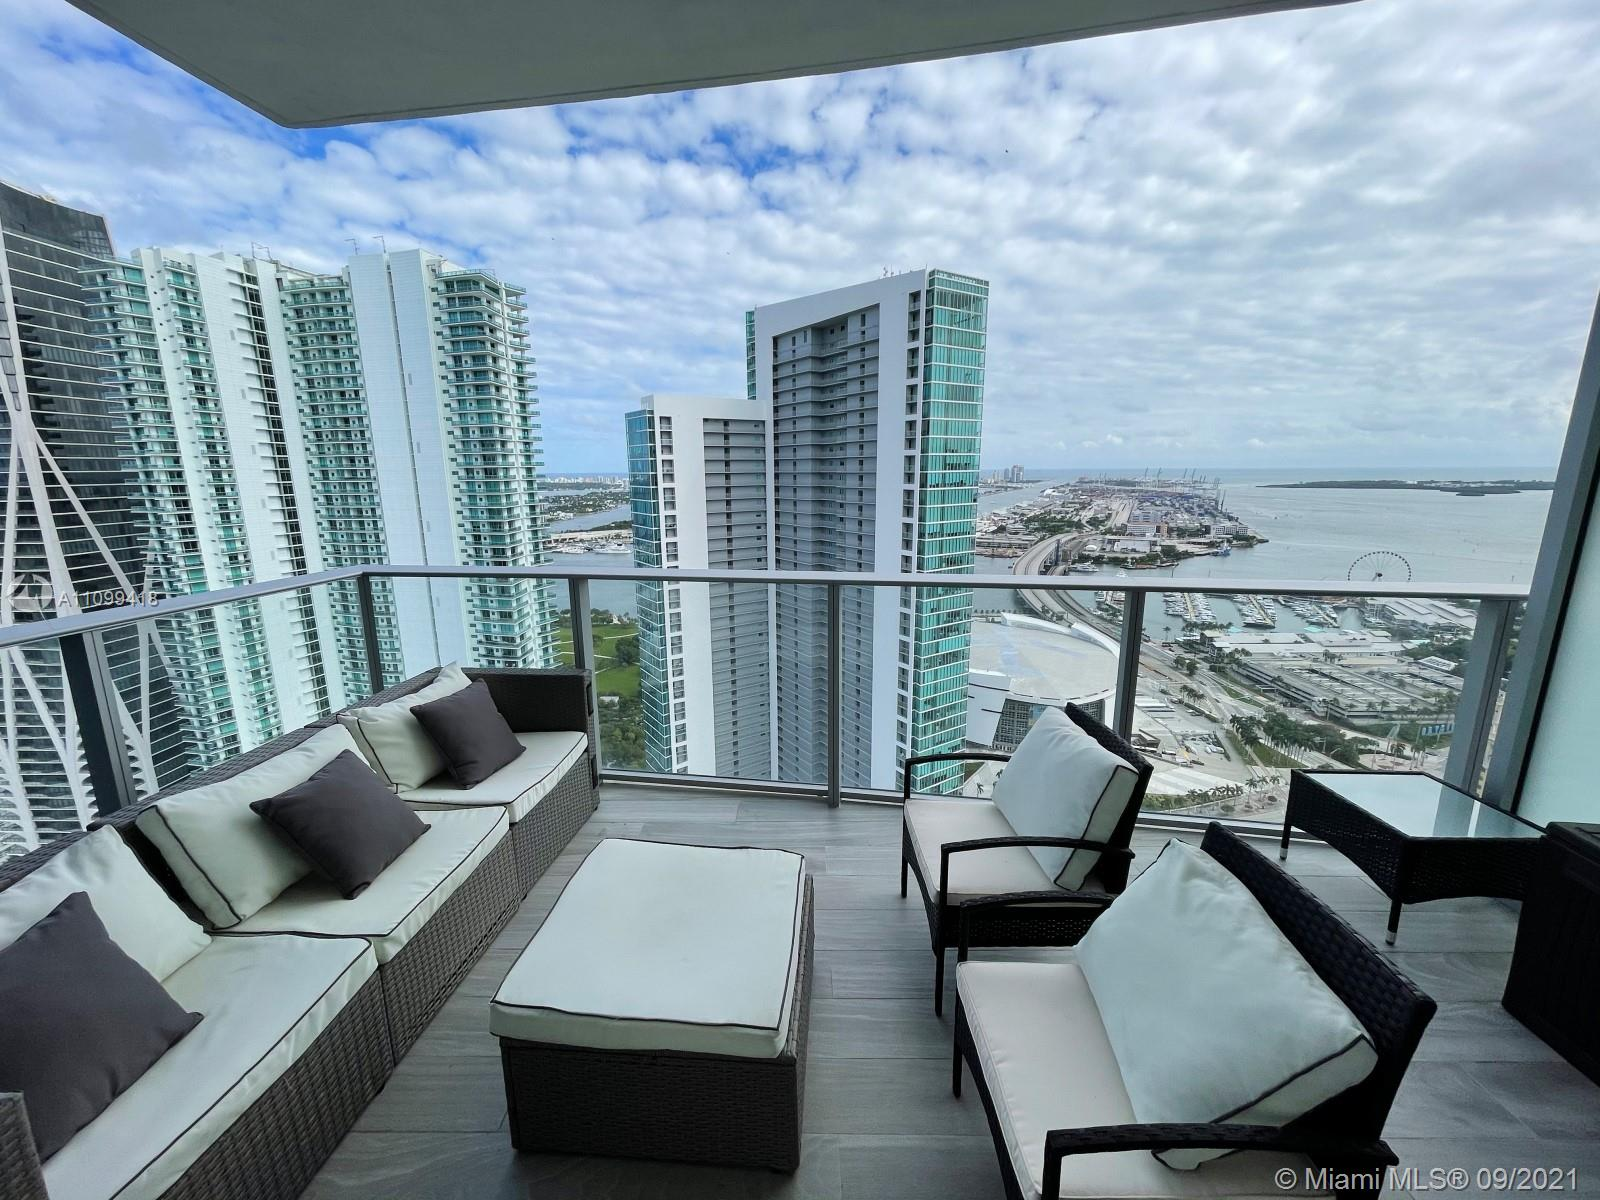 Spectacular 1,690 SQFT 2 Beds + Den + 3 Full Baths with water views residence! Subzero refrigerator. Private elevator foyer. 1valet 1 assigned